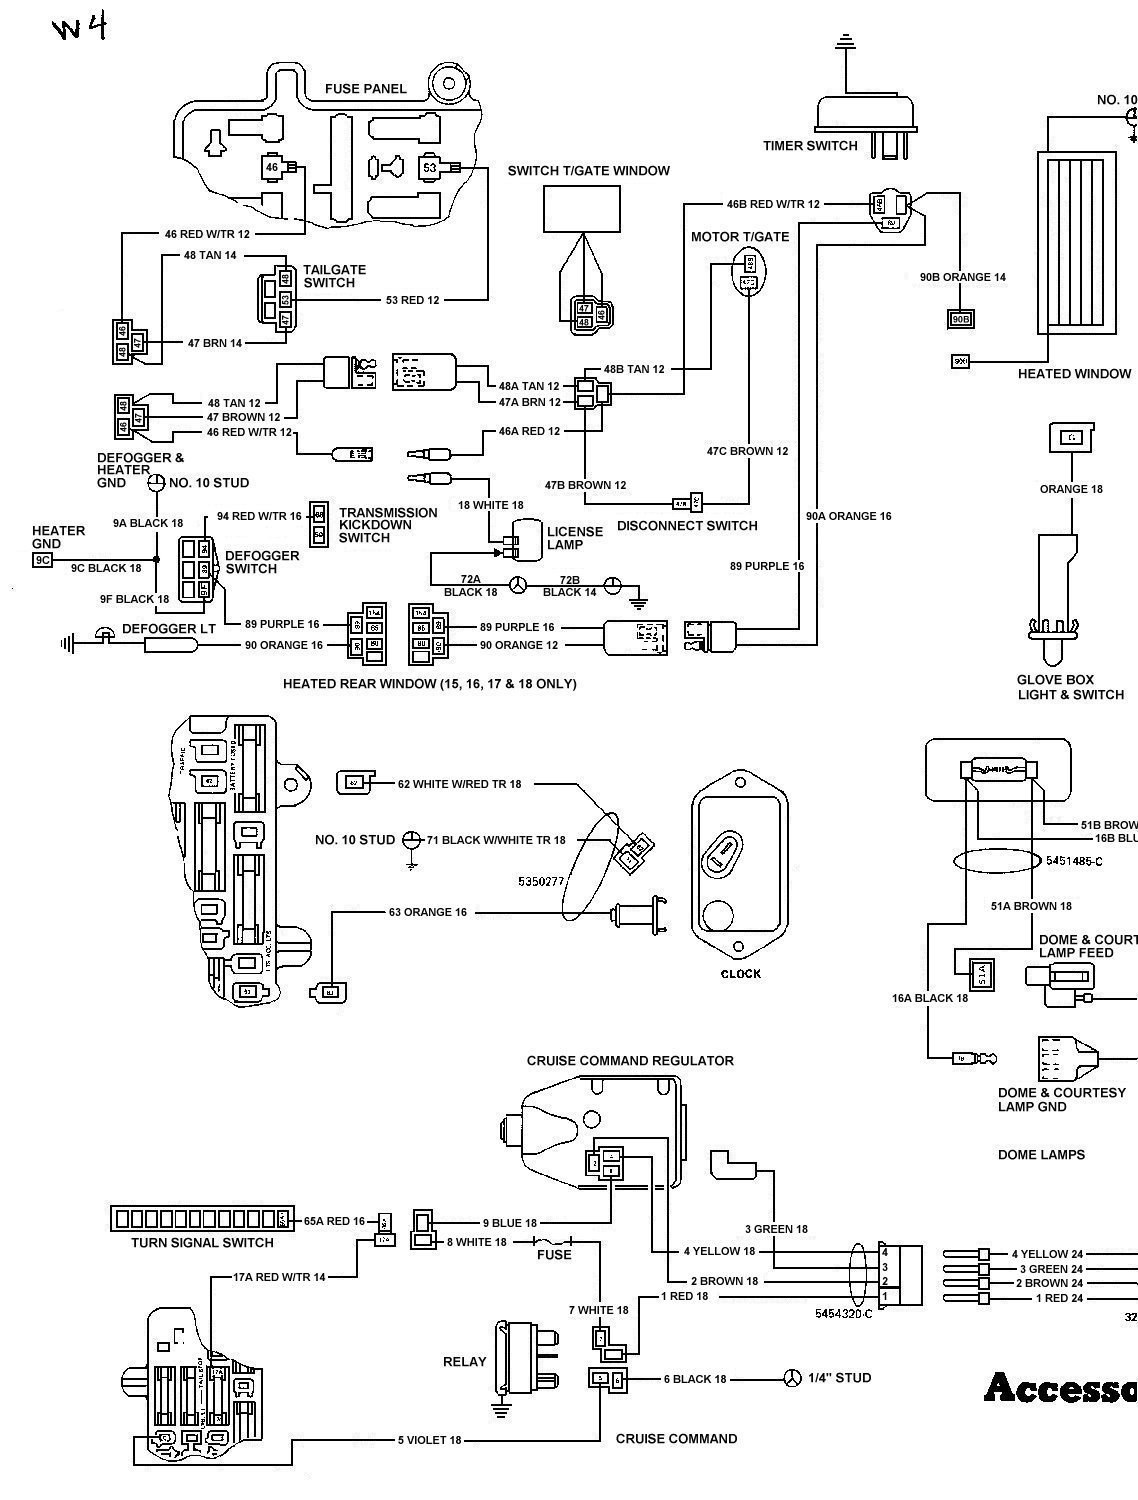 78_FSJ_WiringDiagramPage4 tom 'oljeep' collins fsj wiring page 1978 Corvette Wiring Diagram at crackthecode.co